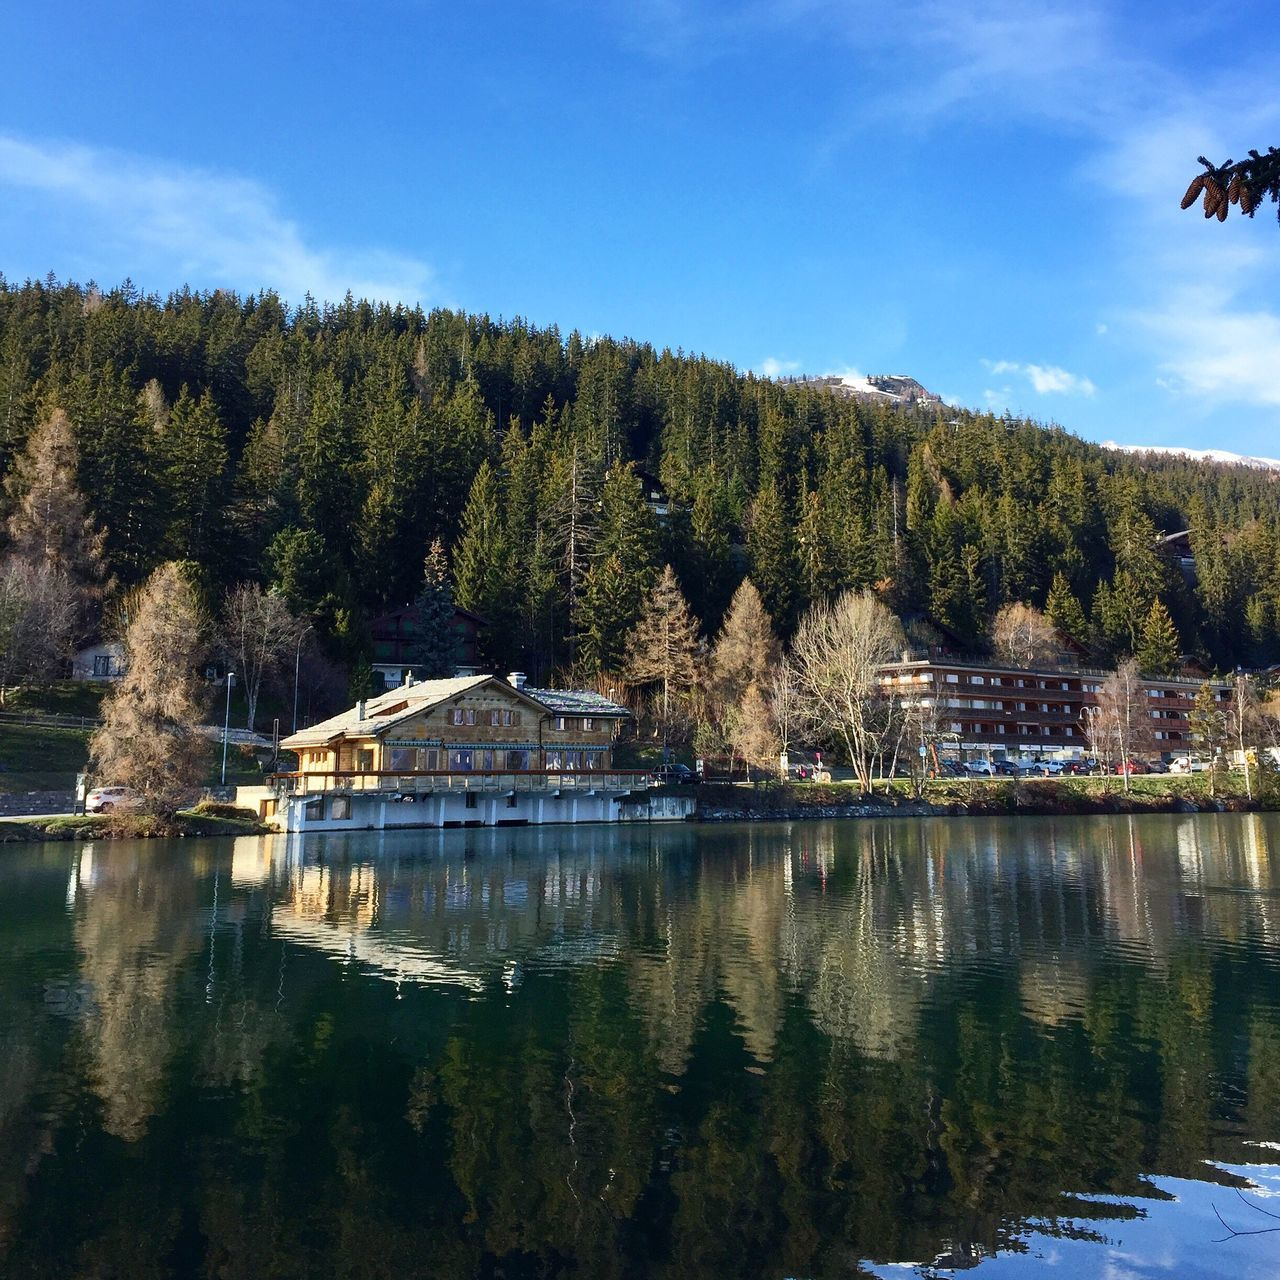 Lago Cransmontana Tranquility Beauty In Nature Waterfront Scenics No People Tranquil Scene Outdoors Water